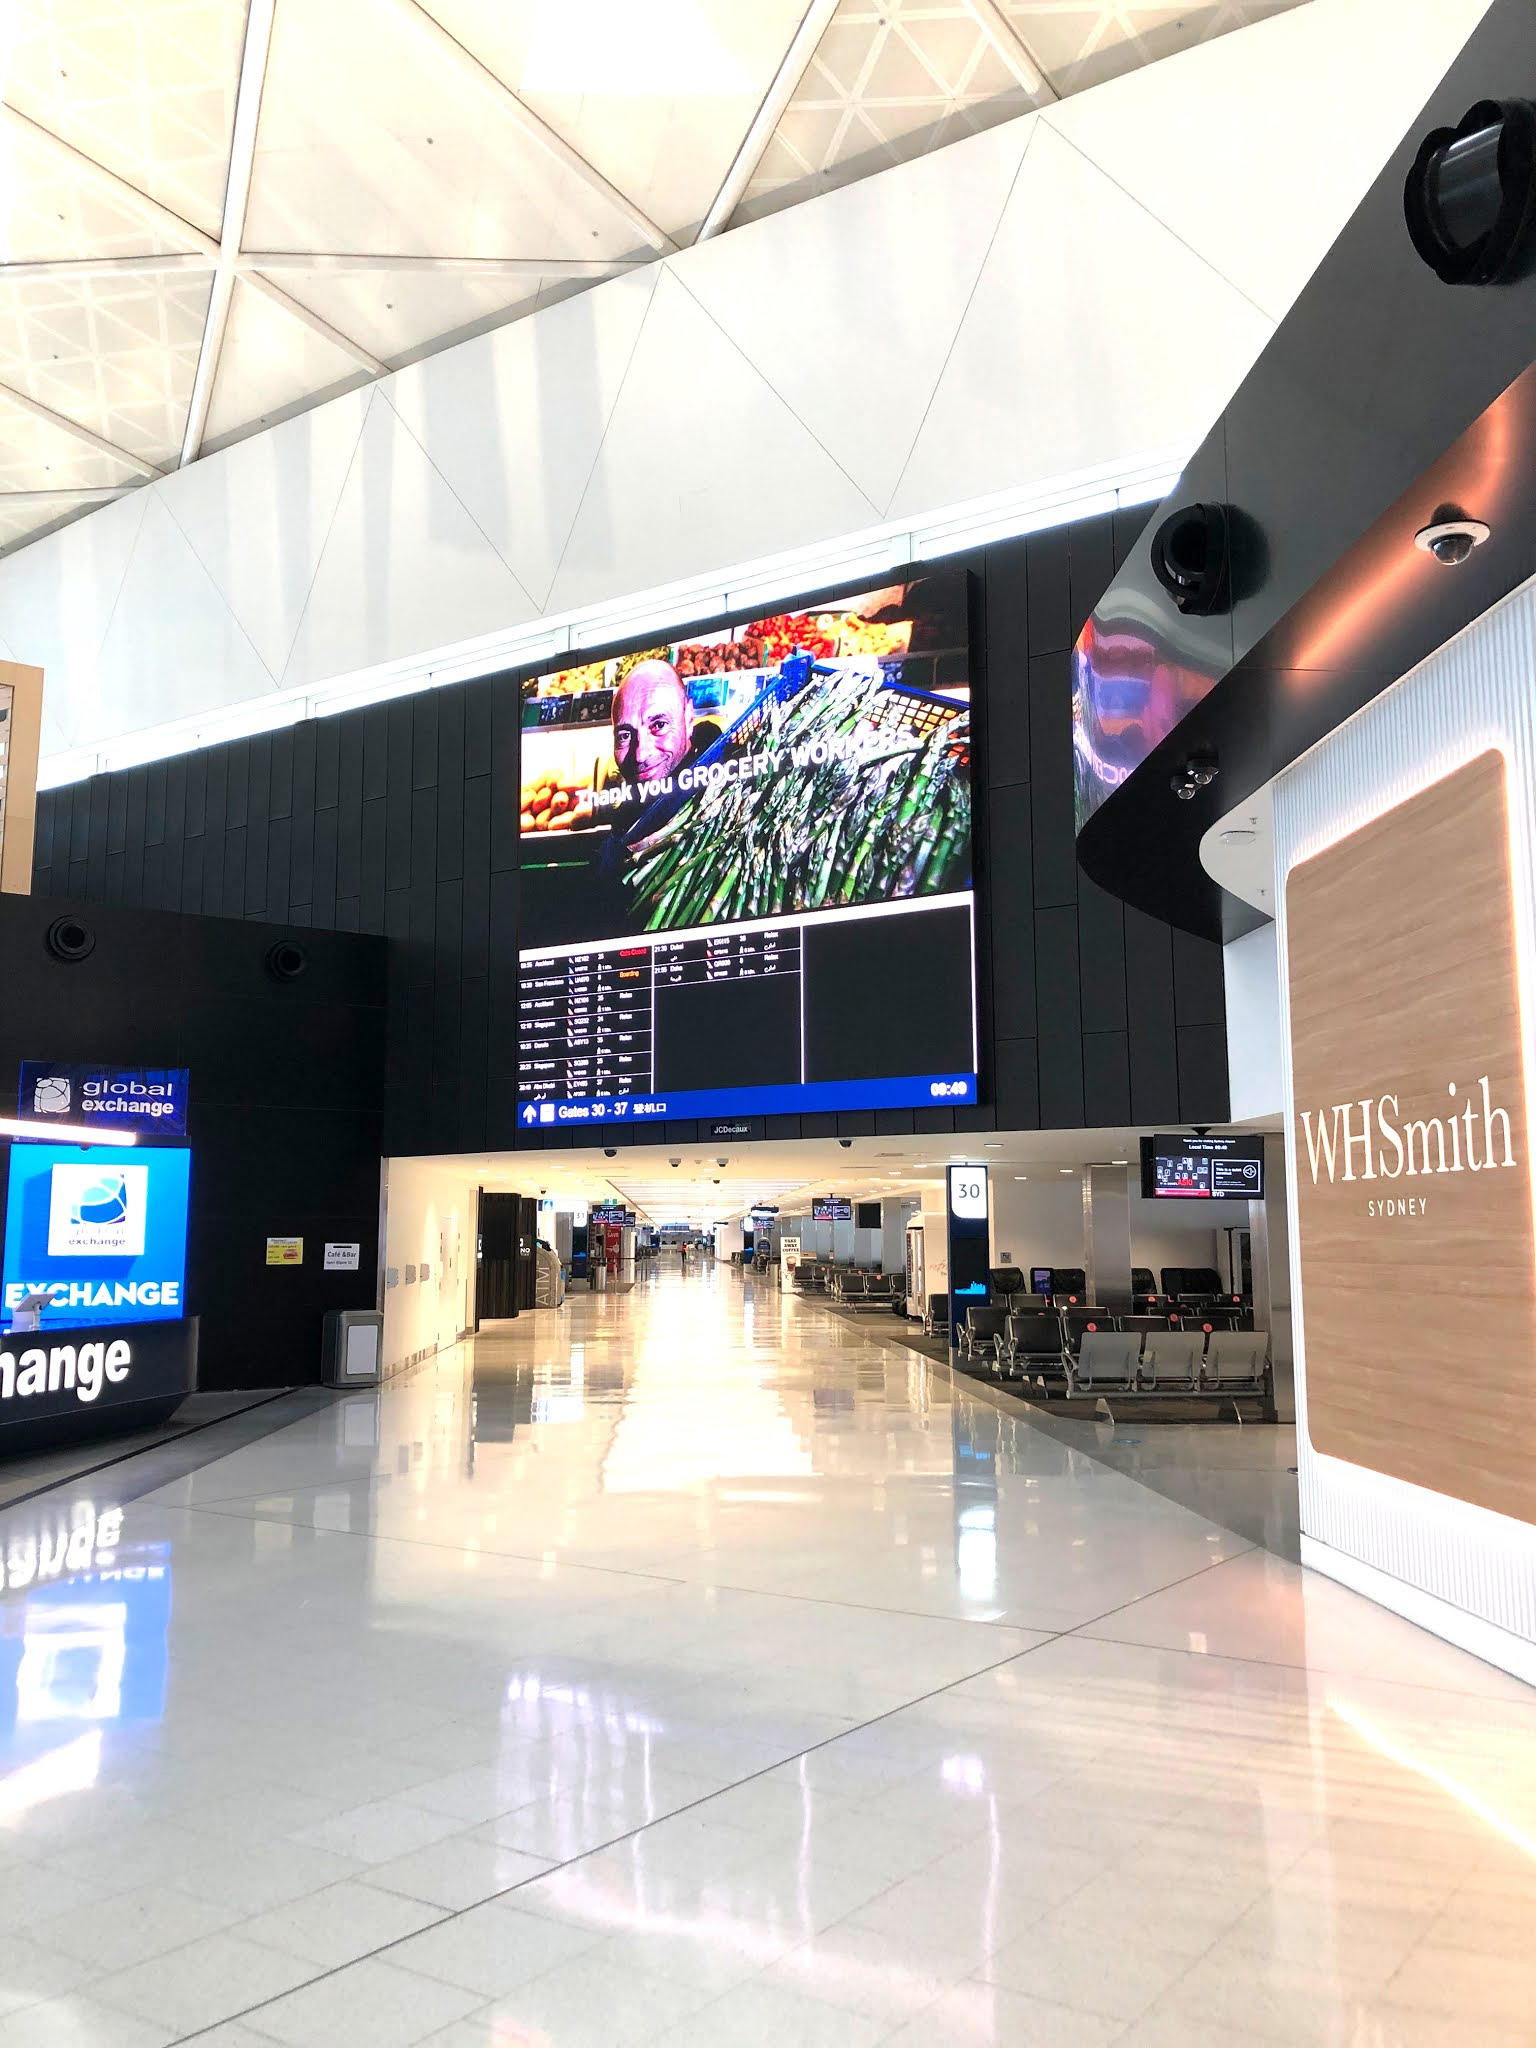 Sydney International airport completely empty during the covid 19 pandemic